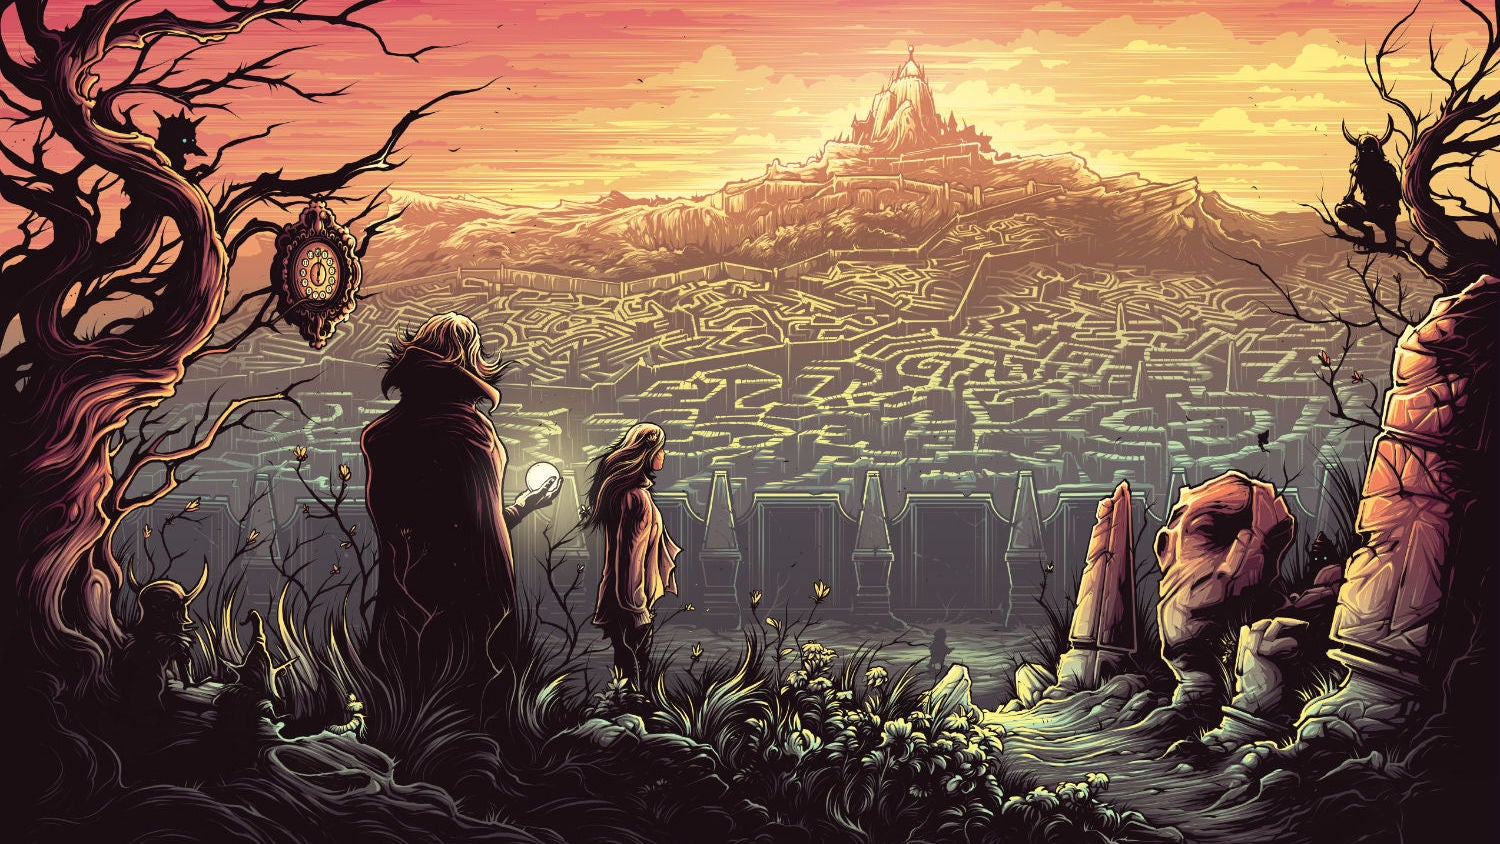 Reimagine Classic Movies Through The Acid-Trip Style Of Artist Dan Mumford